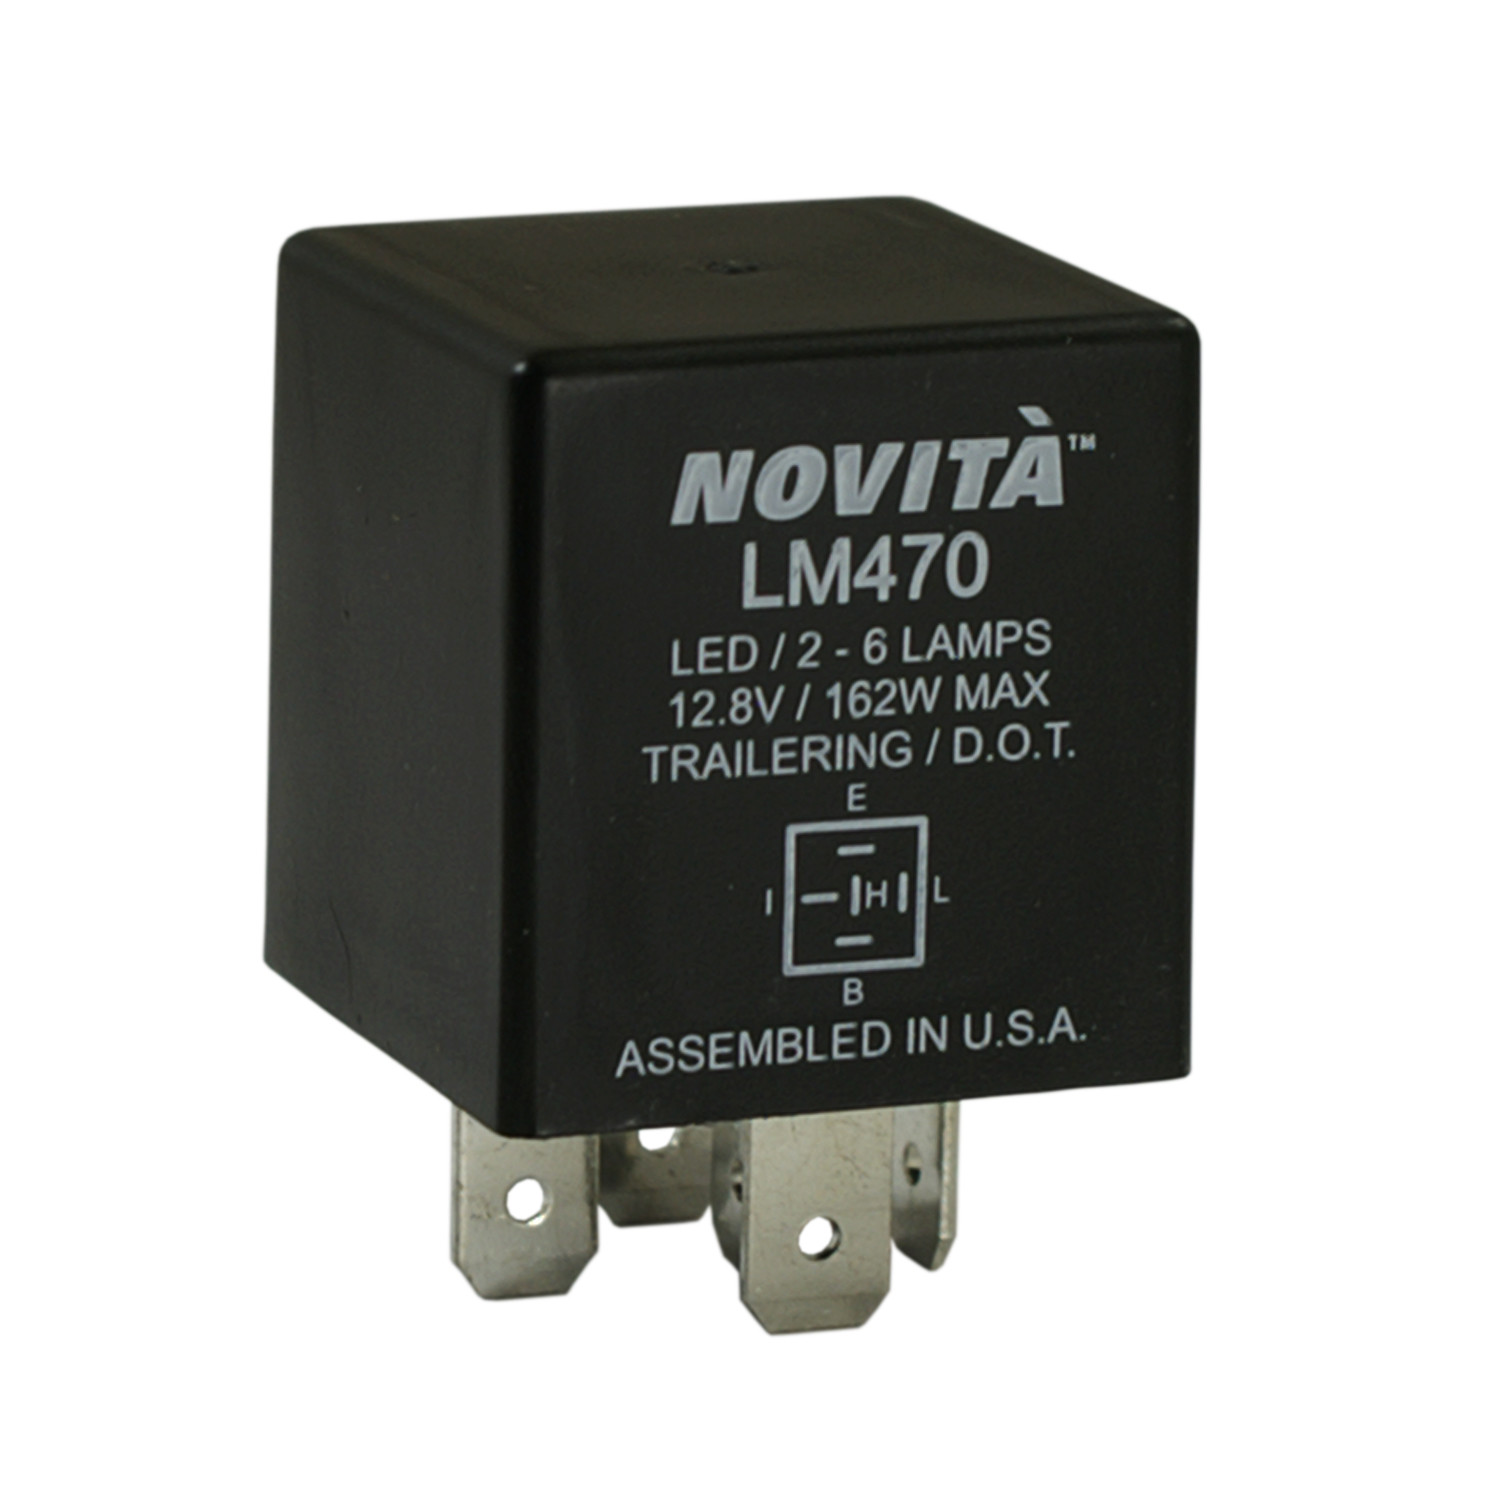 NOVITA FLASHERS - Lighting Control Module - TRD LM470